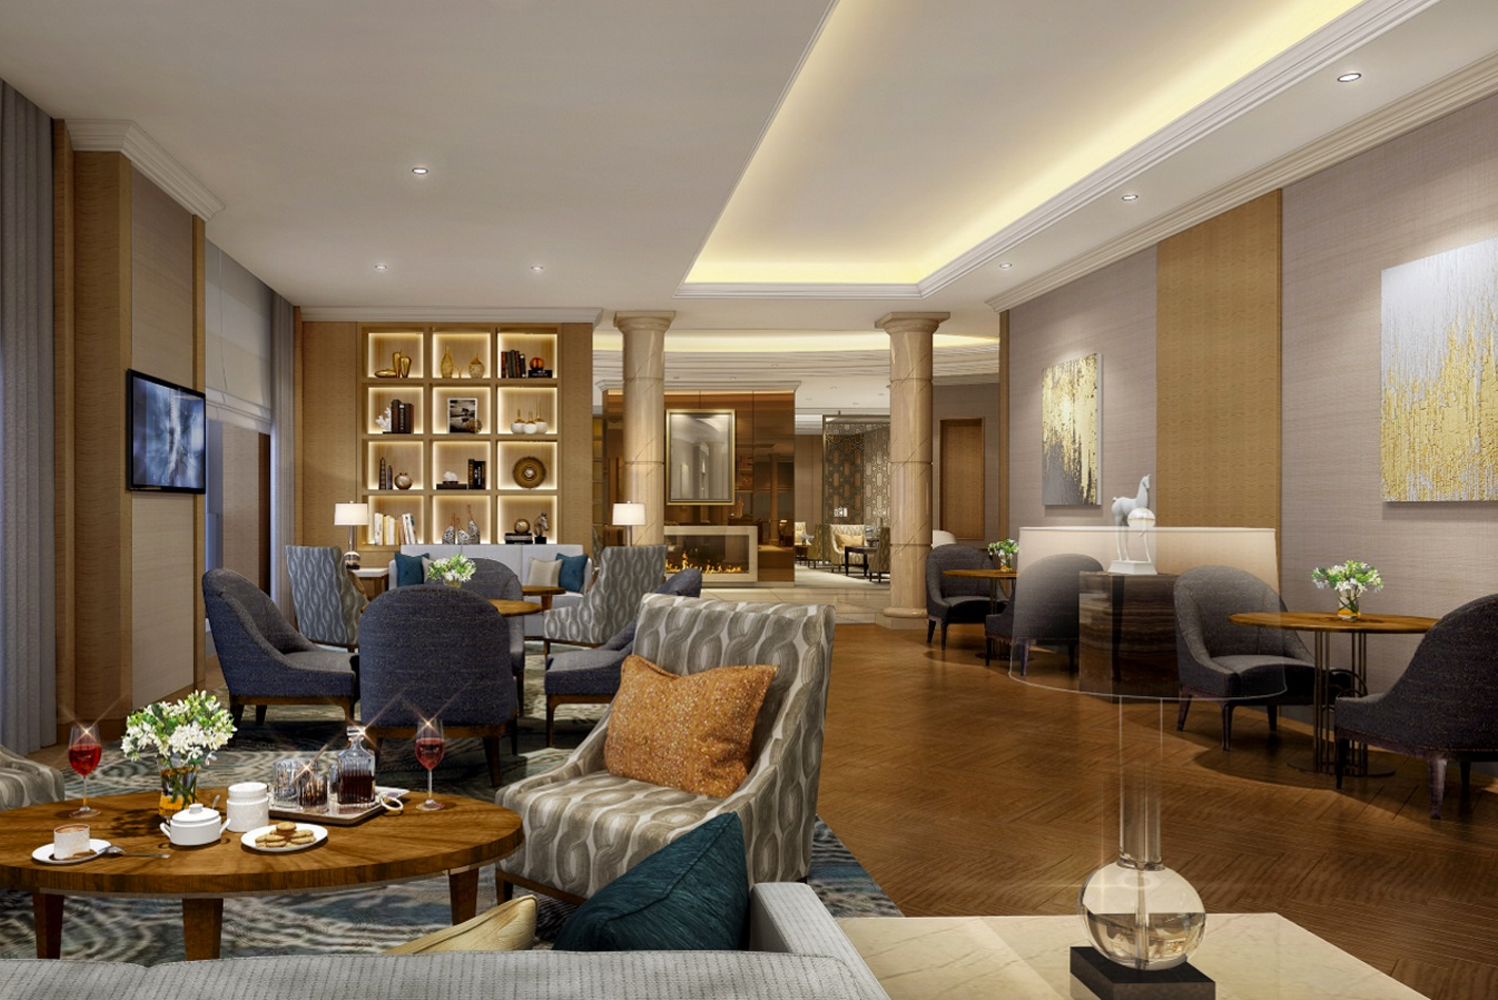 The interiors use a warm color palette, with specially designed contemporary furnishings.